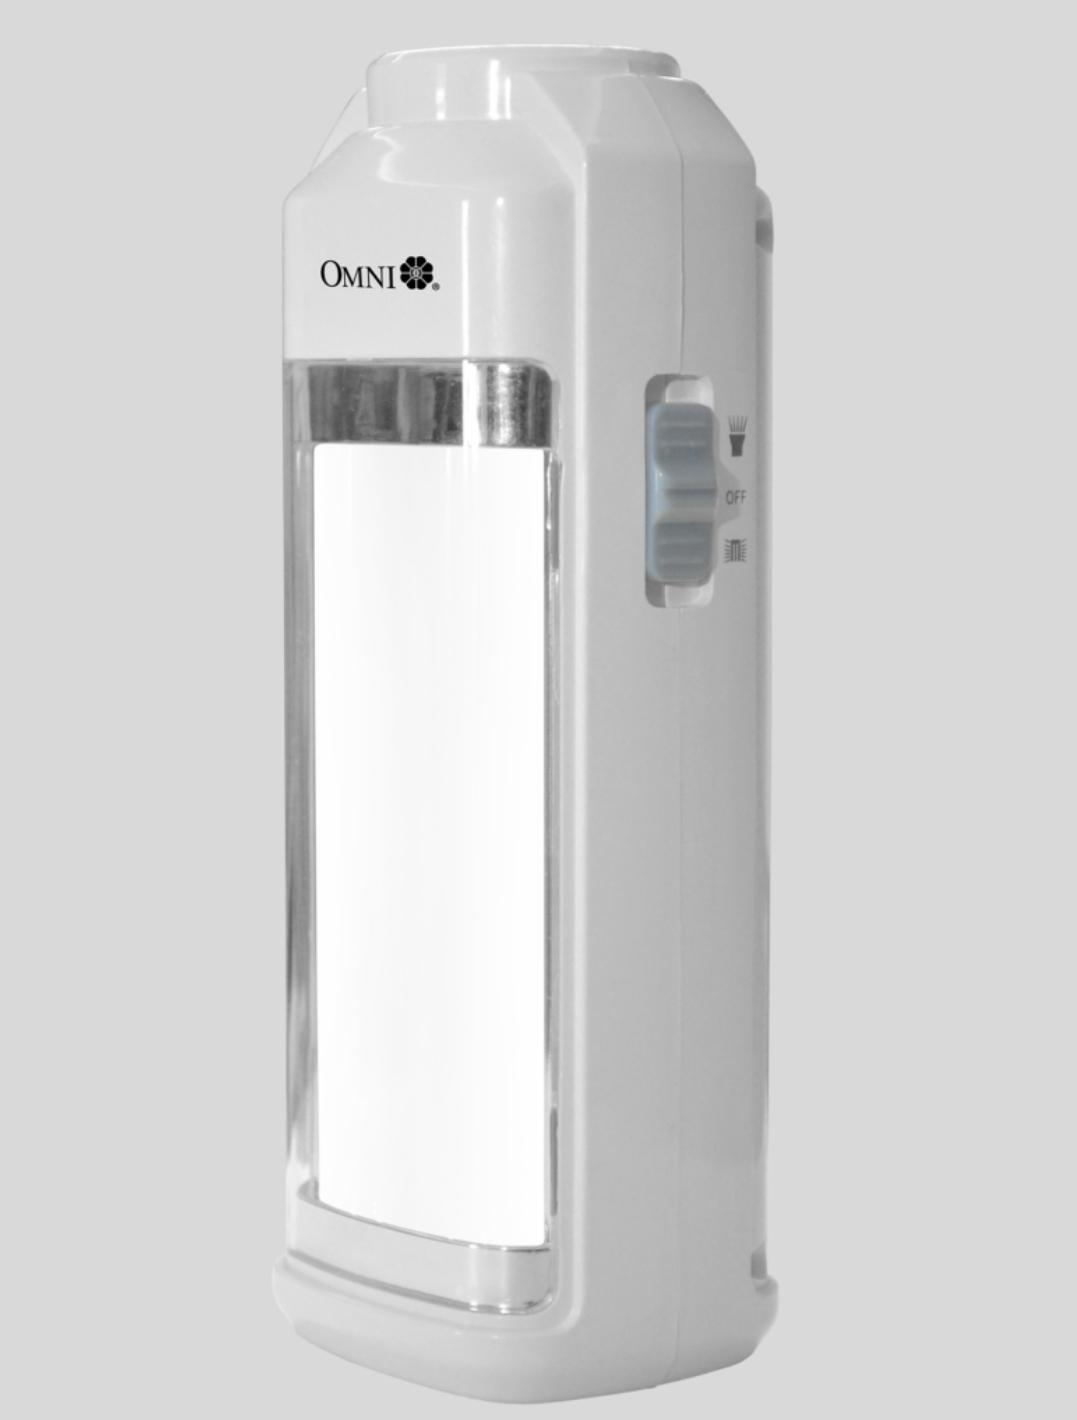 Omni Philippines Price List Light Fan Lamp Bulb Wires 2 Gang Switch Wiring Diagram Led Emergency Watts Ael 200 Ael200